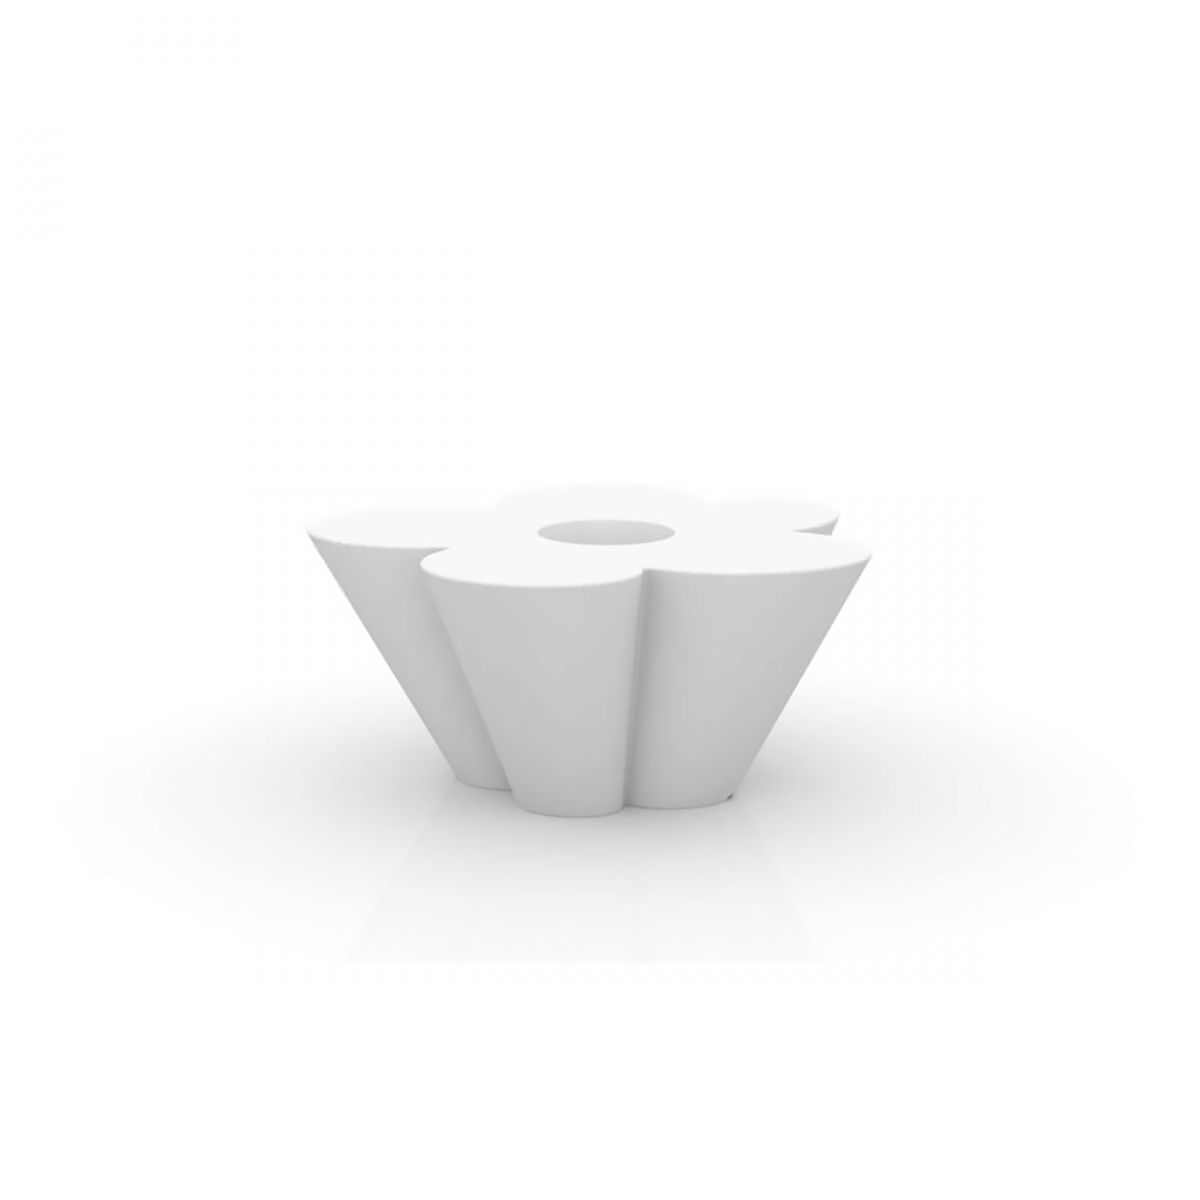 Table de jardin contemporaine agatha vondom zendart design - Table de jardin contemporaine ...